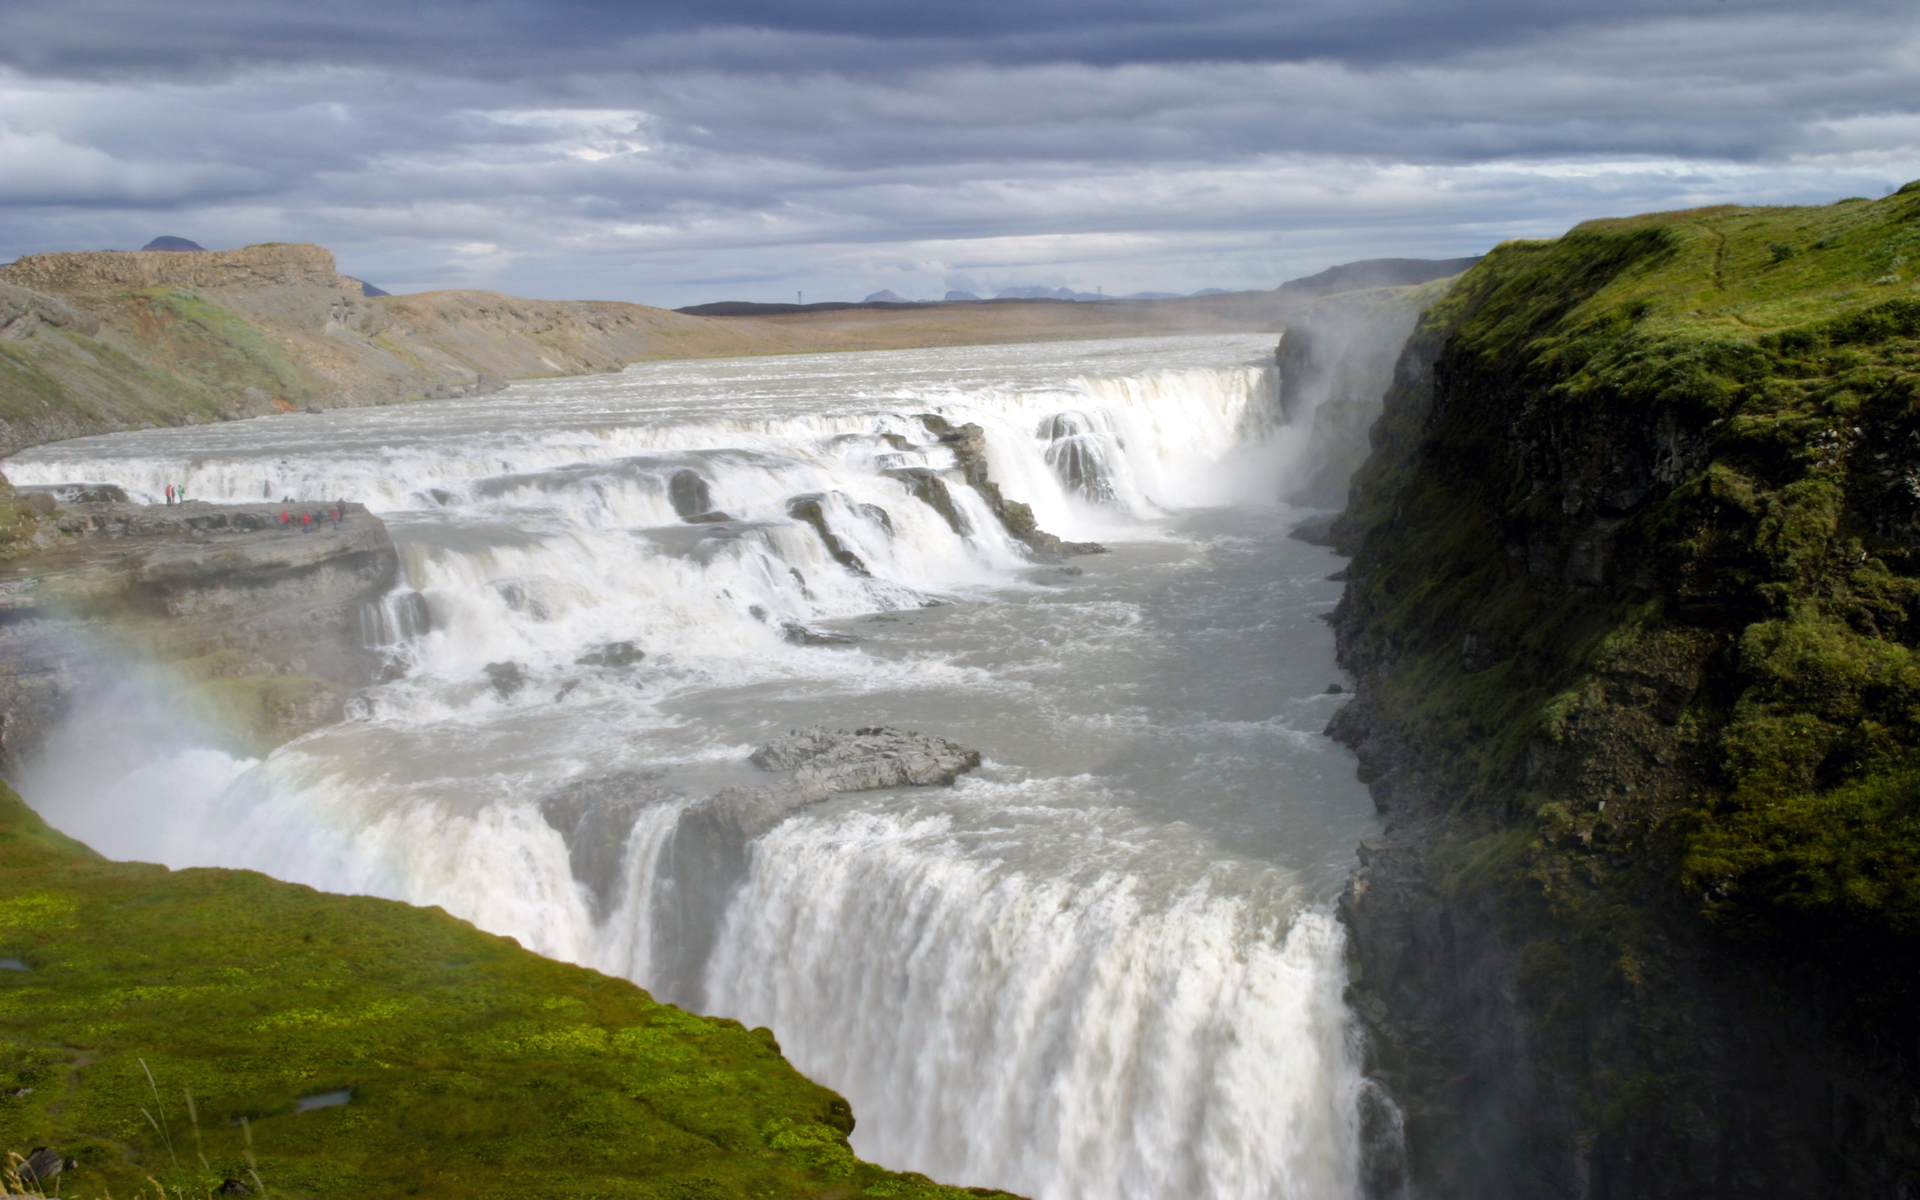 Download this Gullfoss Iceland Venefica picture